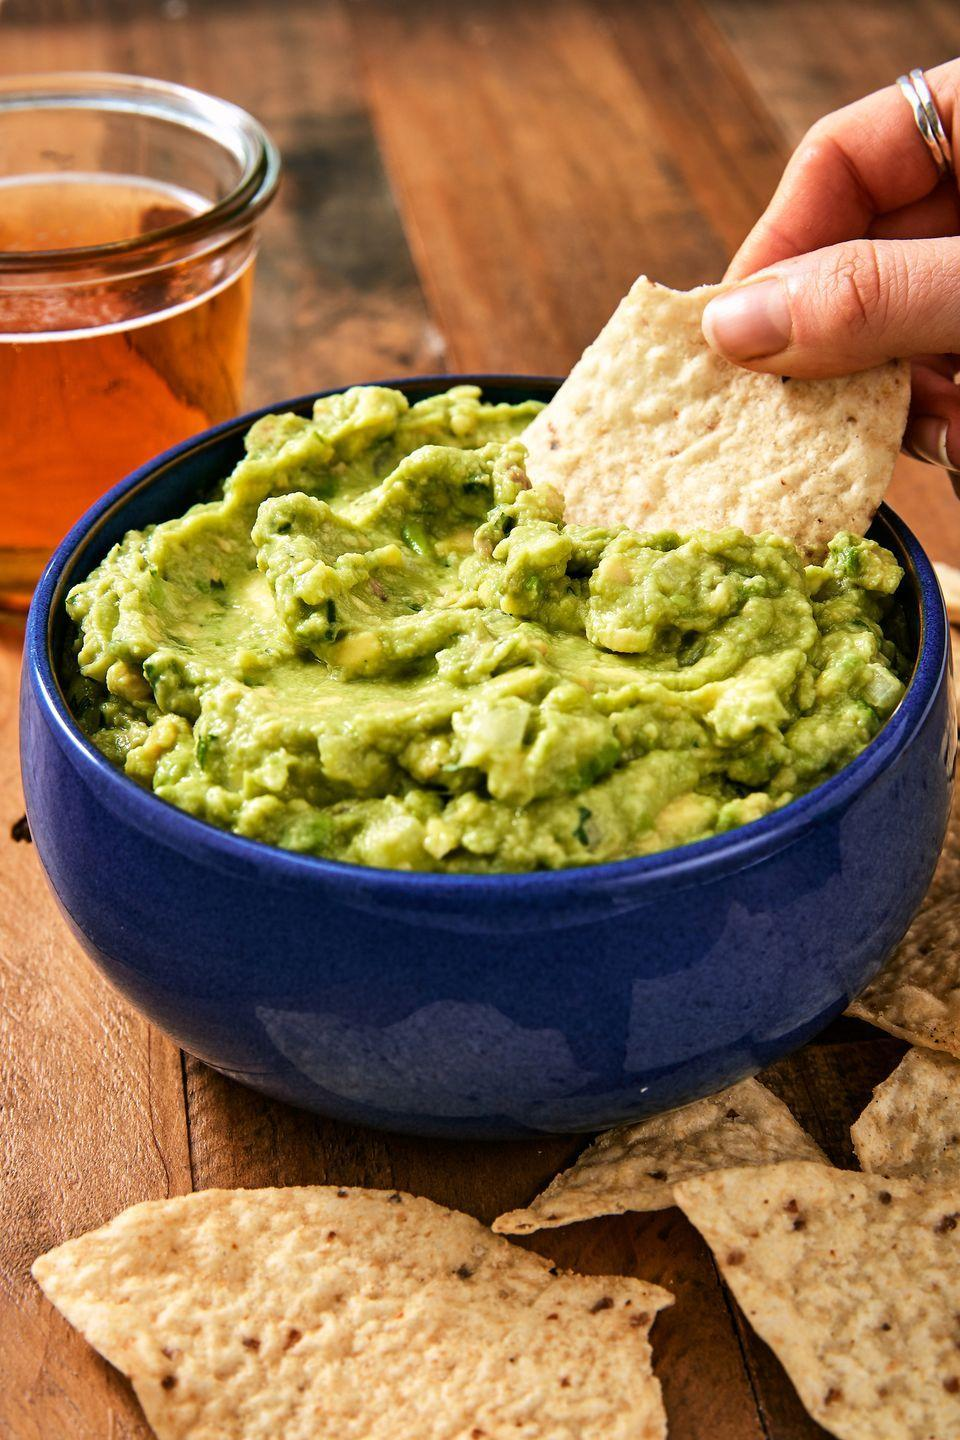 """<p>Serving guacamole at your summer get-togethers is non-negotiable.</p><p>Get the recipe from <a href=""""https://www.delish.com/cooking/recipe-ideas/recipes/a45570/best-ever-guacamole-recipe/"""" rel=""""nofollow noopener"""" target=""""_blank"""" data-ylk=""""slk:Delish"""" class=""""link rapid-noclick-resp"""">Delish</a>.</p>"""